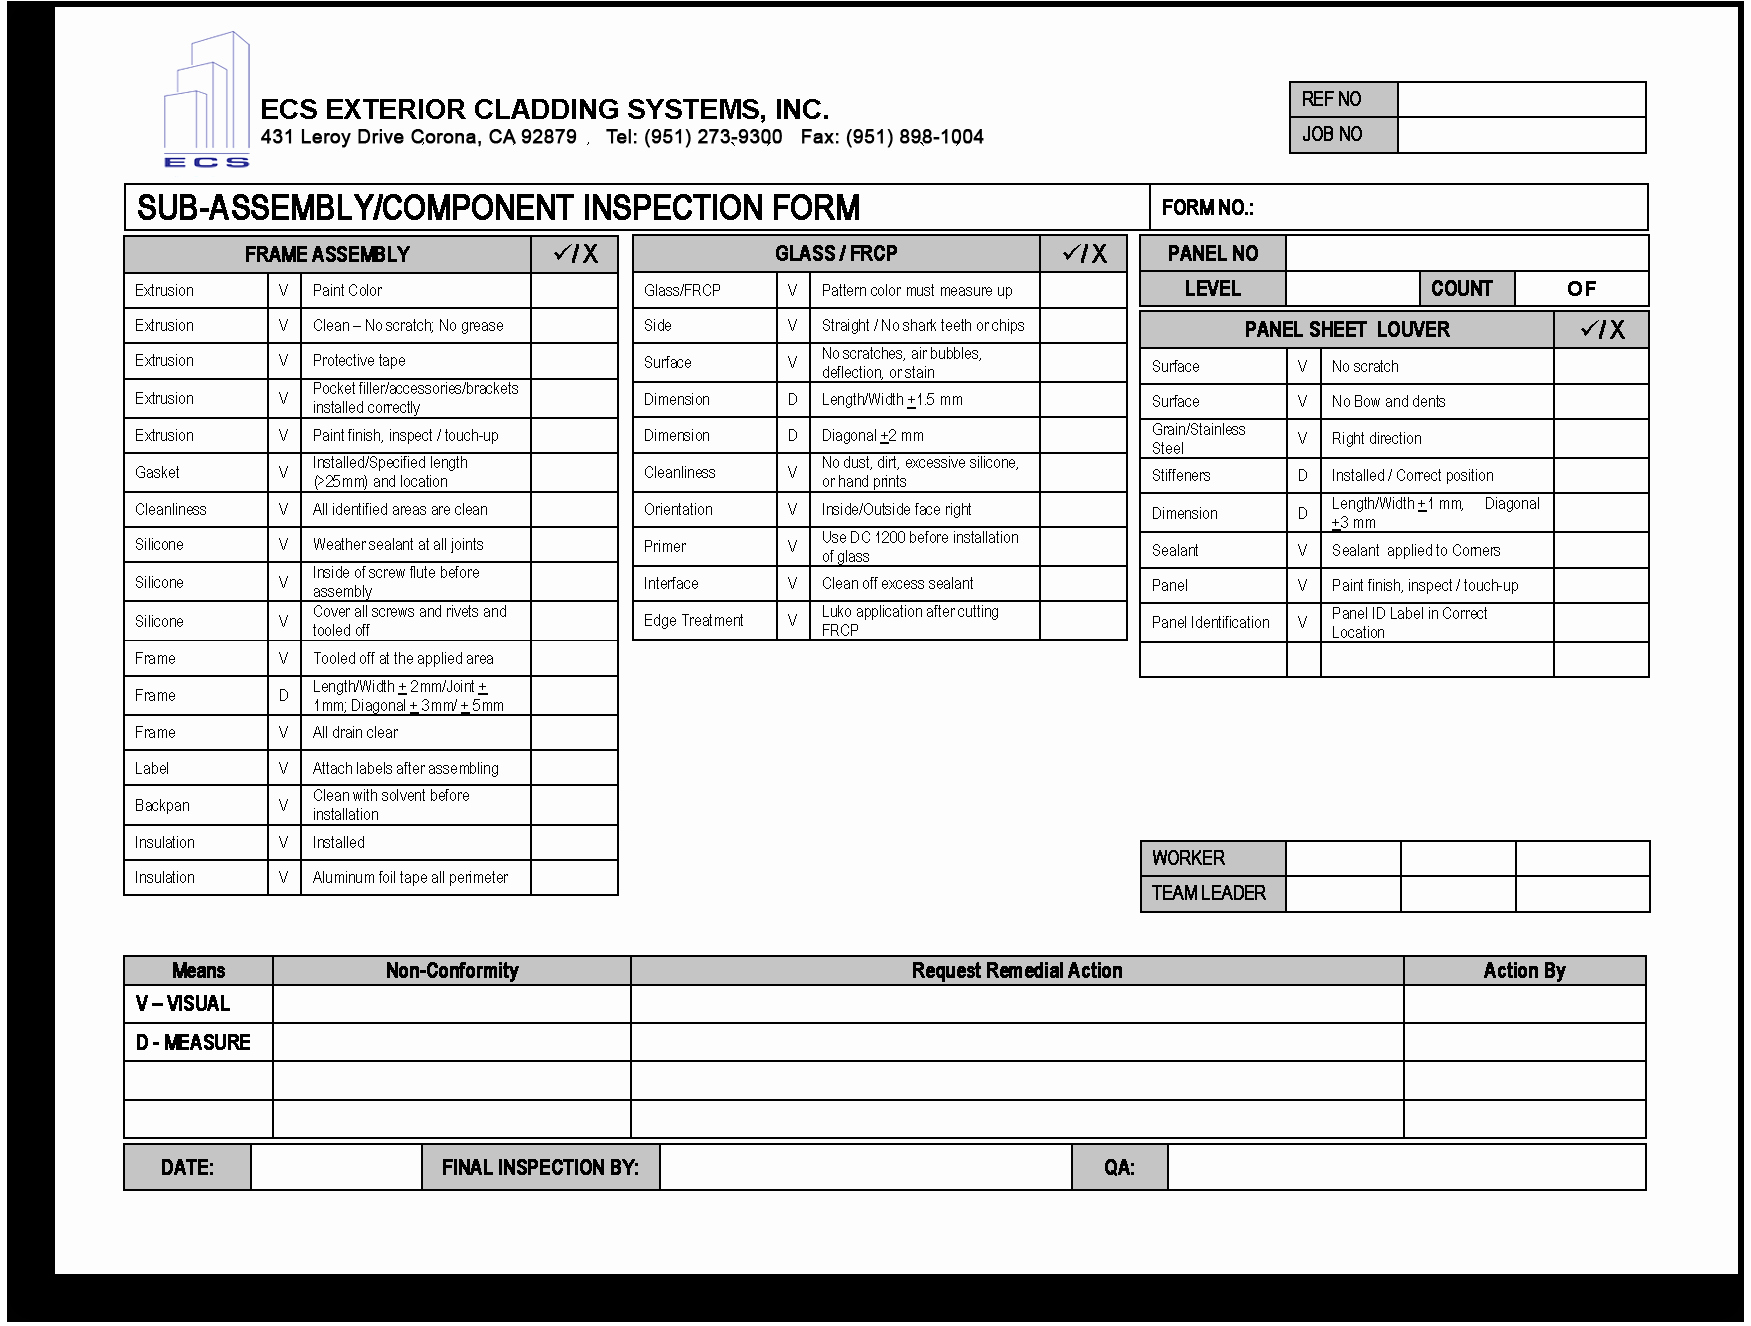 Quality Control form Template Best Of Quality Control Check Sheet Template Erieairfair